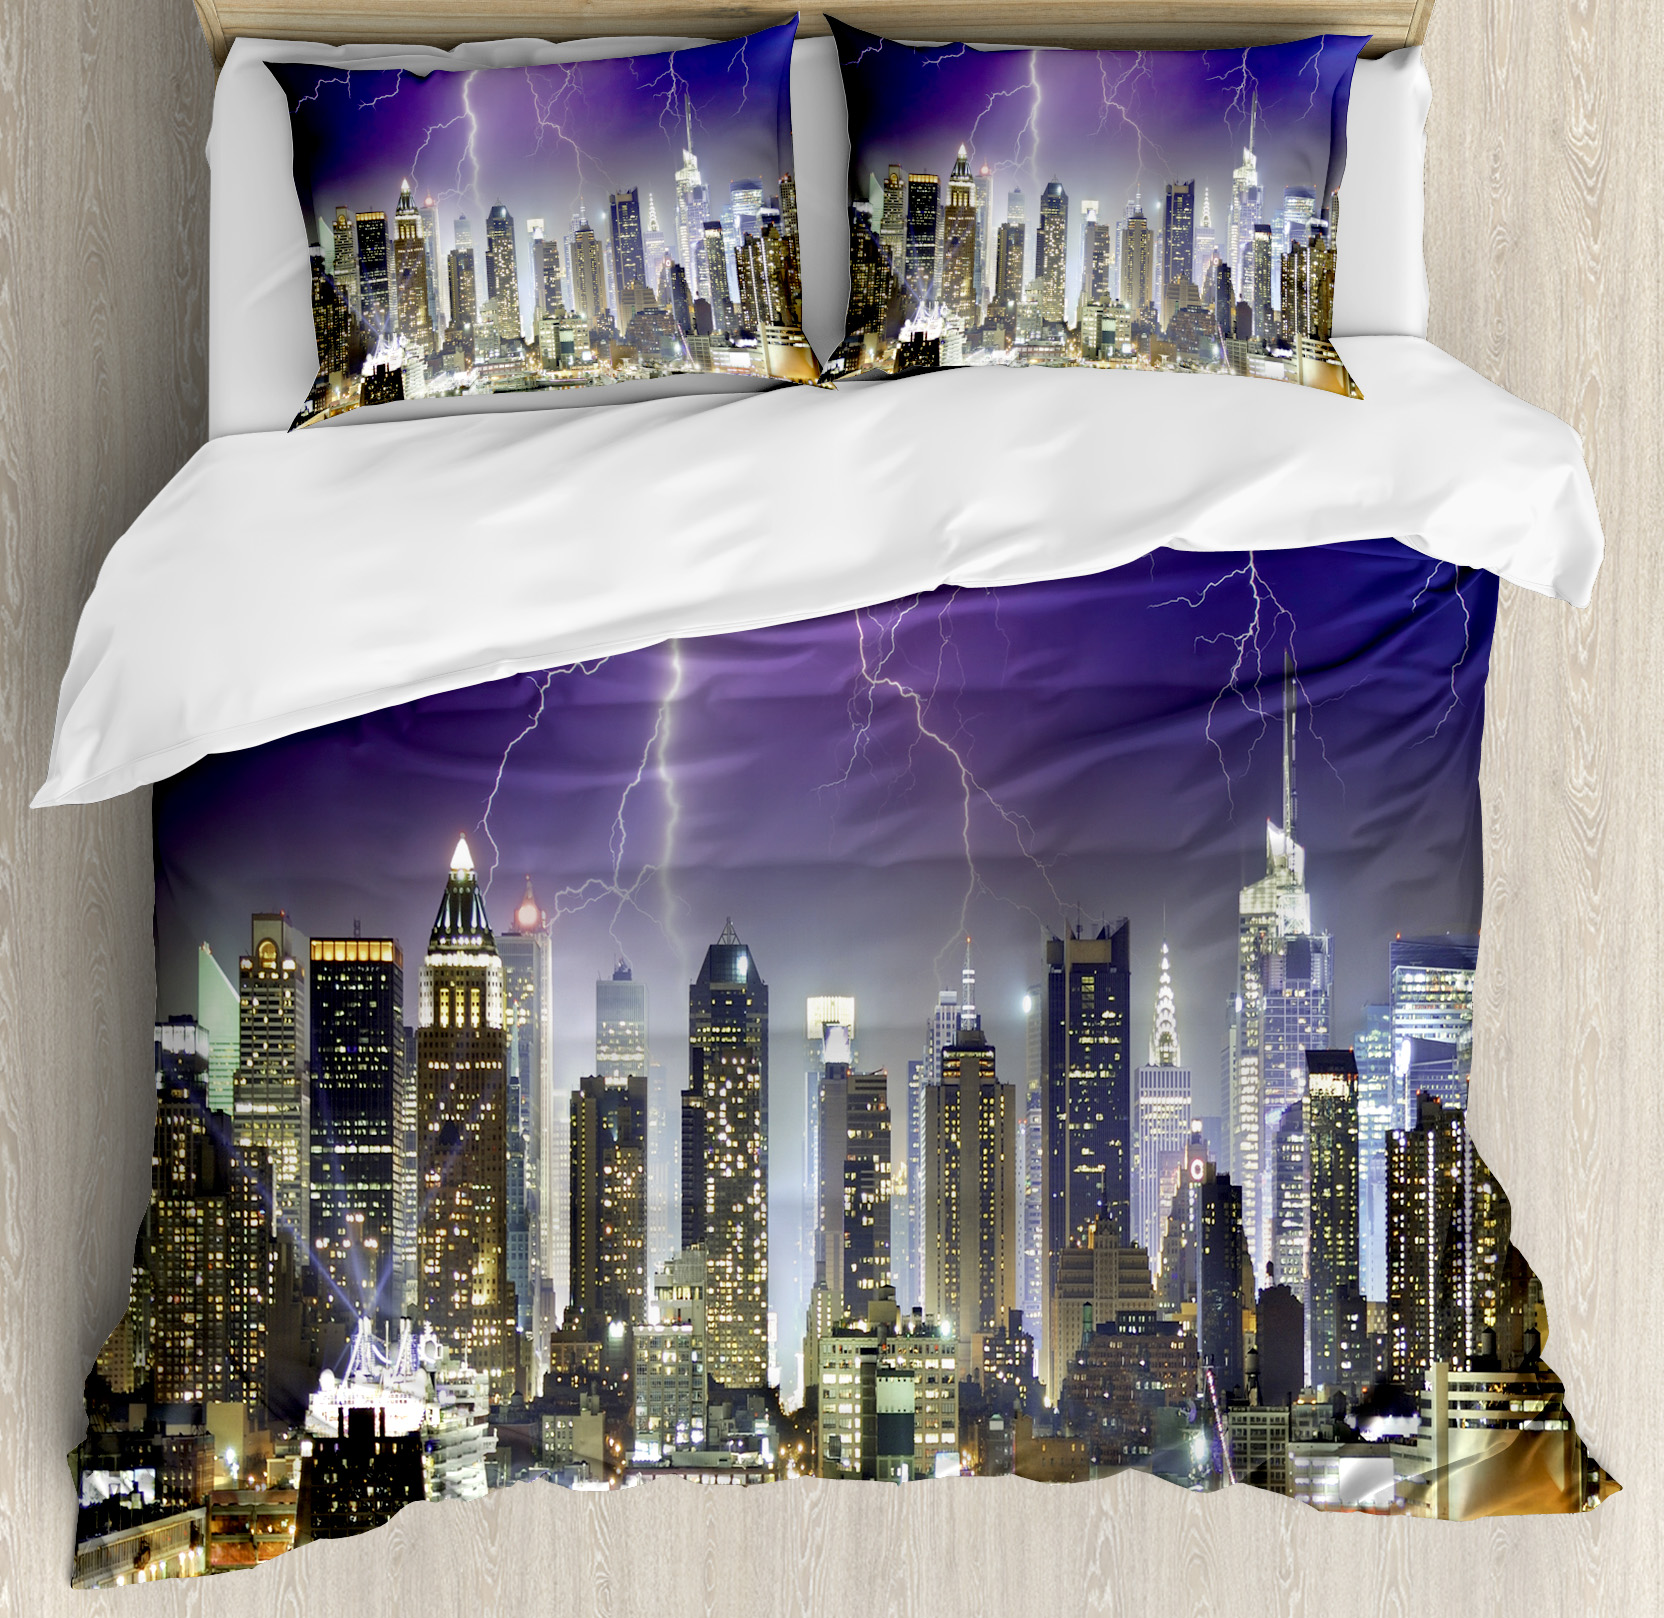 City Queen Size Duvet Cover Set, Storm and Thunder at Night in New York City Apocalyptic Dramatic View, Decorative 3 Piece Bedding Set with 2 Pillow Shams, Indigo Lilac Charcoal Grey, by Ambesonne